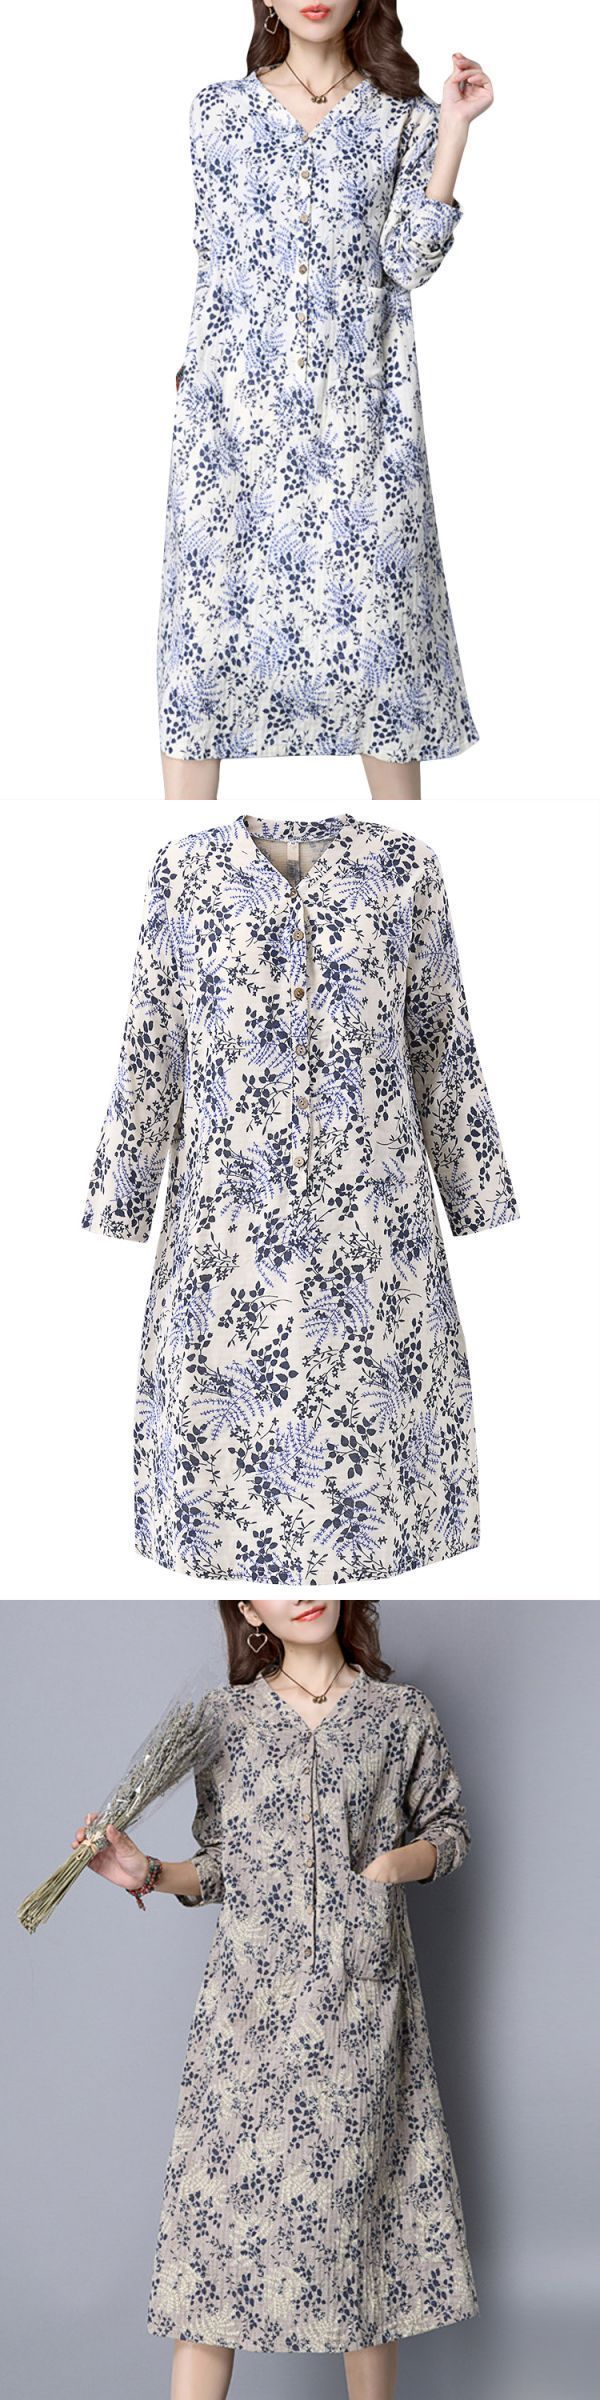 Casual dresses under 10 dollars vintage women long sleeve floral printing loose dress #casual #dresses #design #2017 #casual #dresses #empire #waist #casual #dresses #house #of #fraser #casual #dresses #juniors #cheap